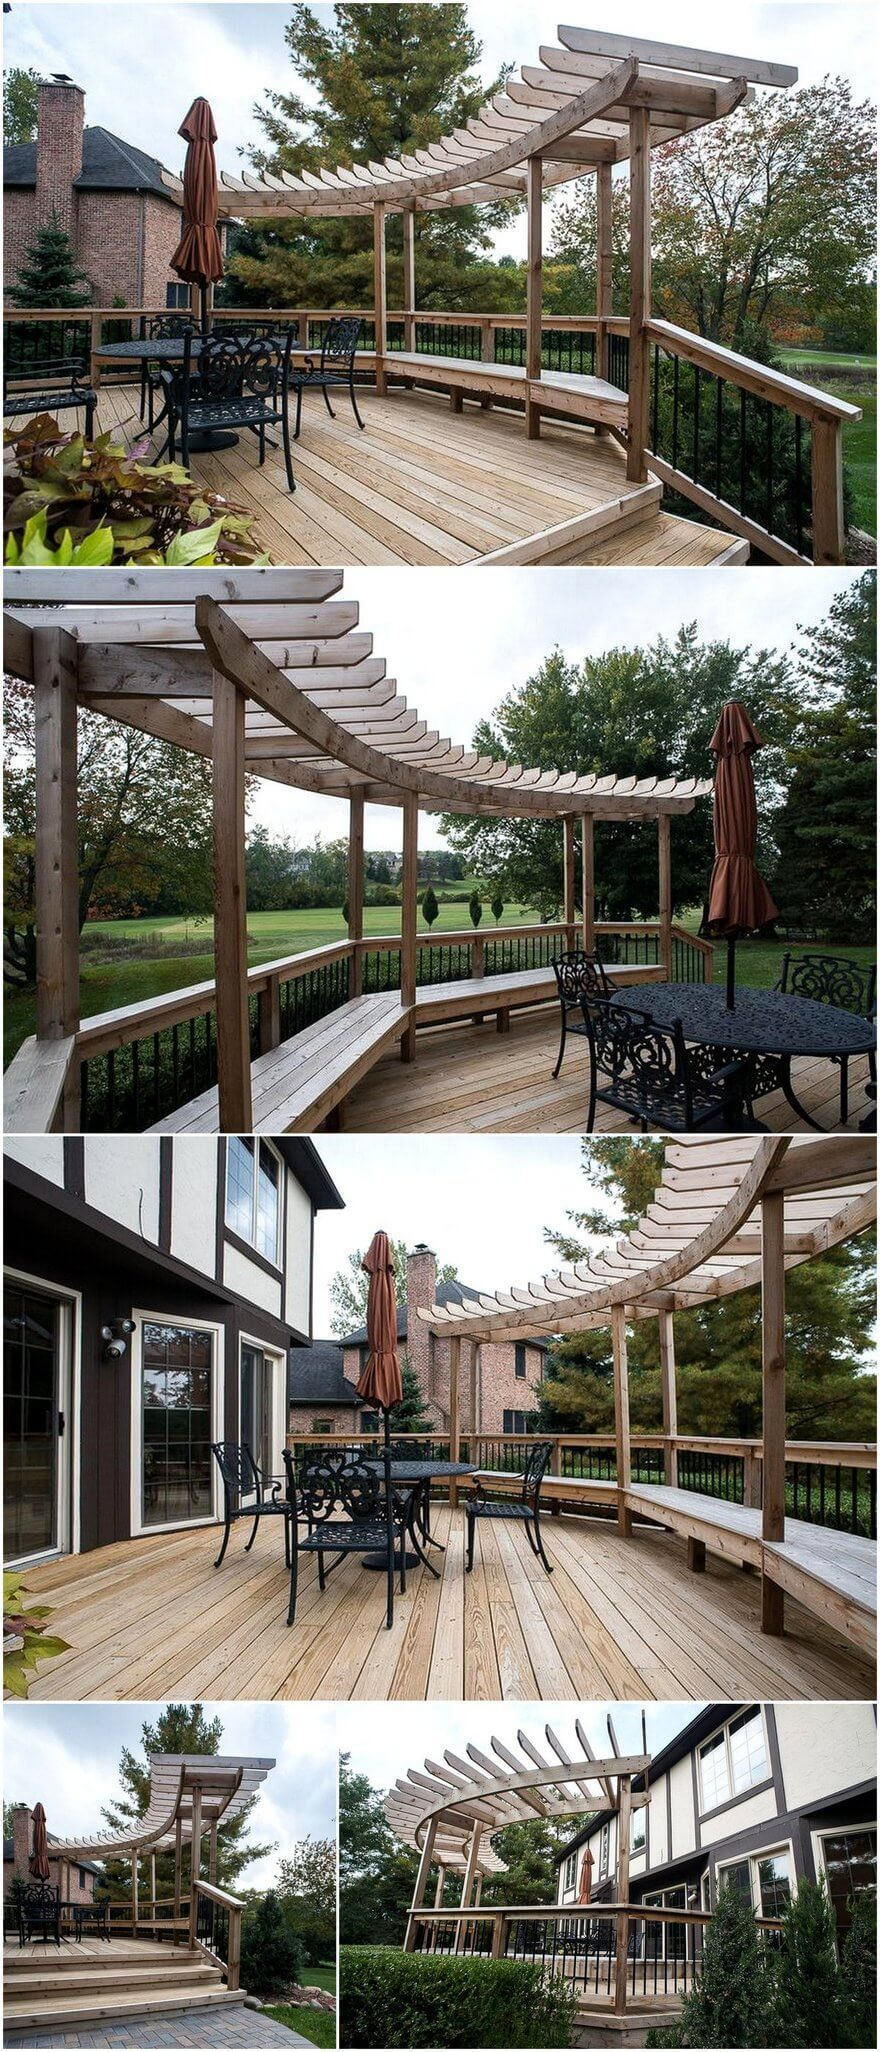 Sometime Pergola Deck Plan Is Only Installed For The Transformation Ordinary Looking Outdoor Patios This Curved Pergola D Curved Pergola Pergola Plans Pergola